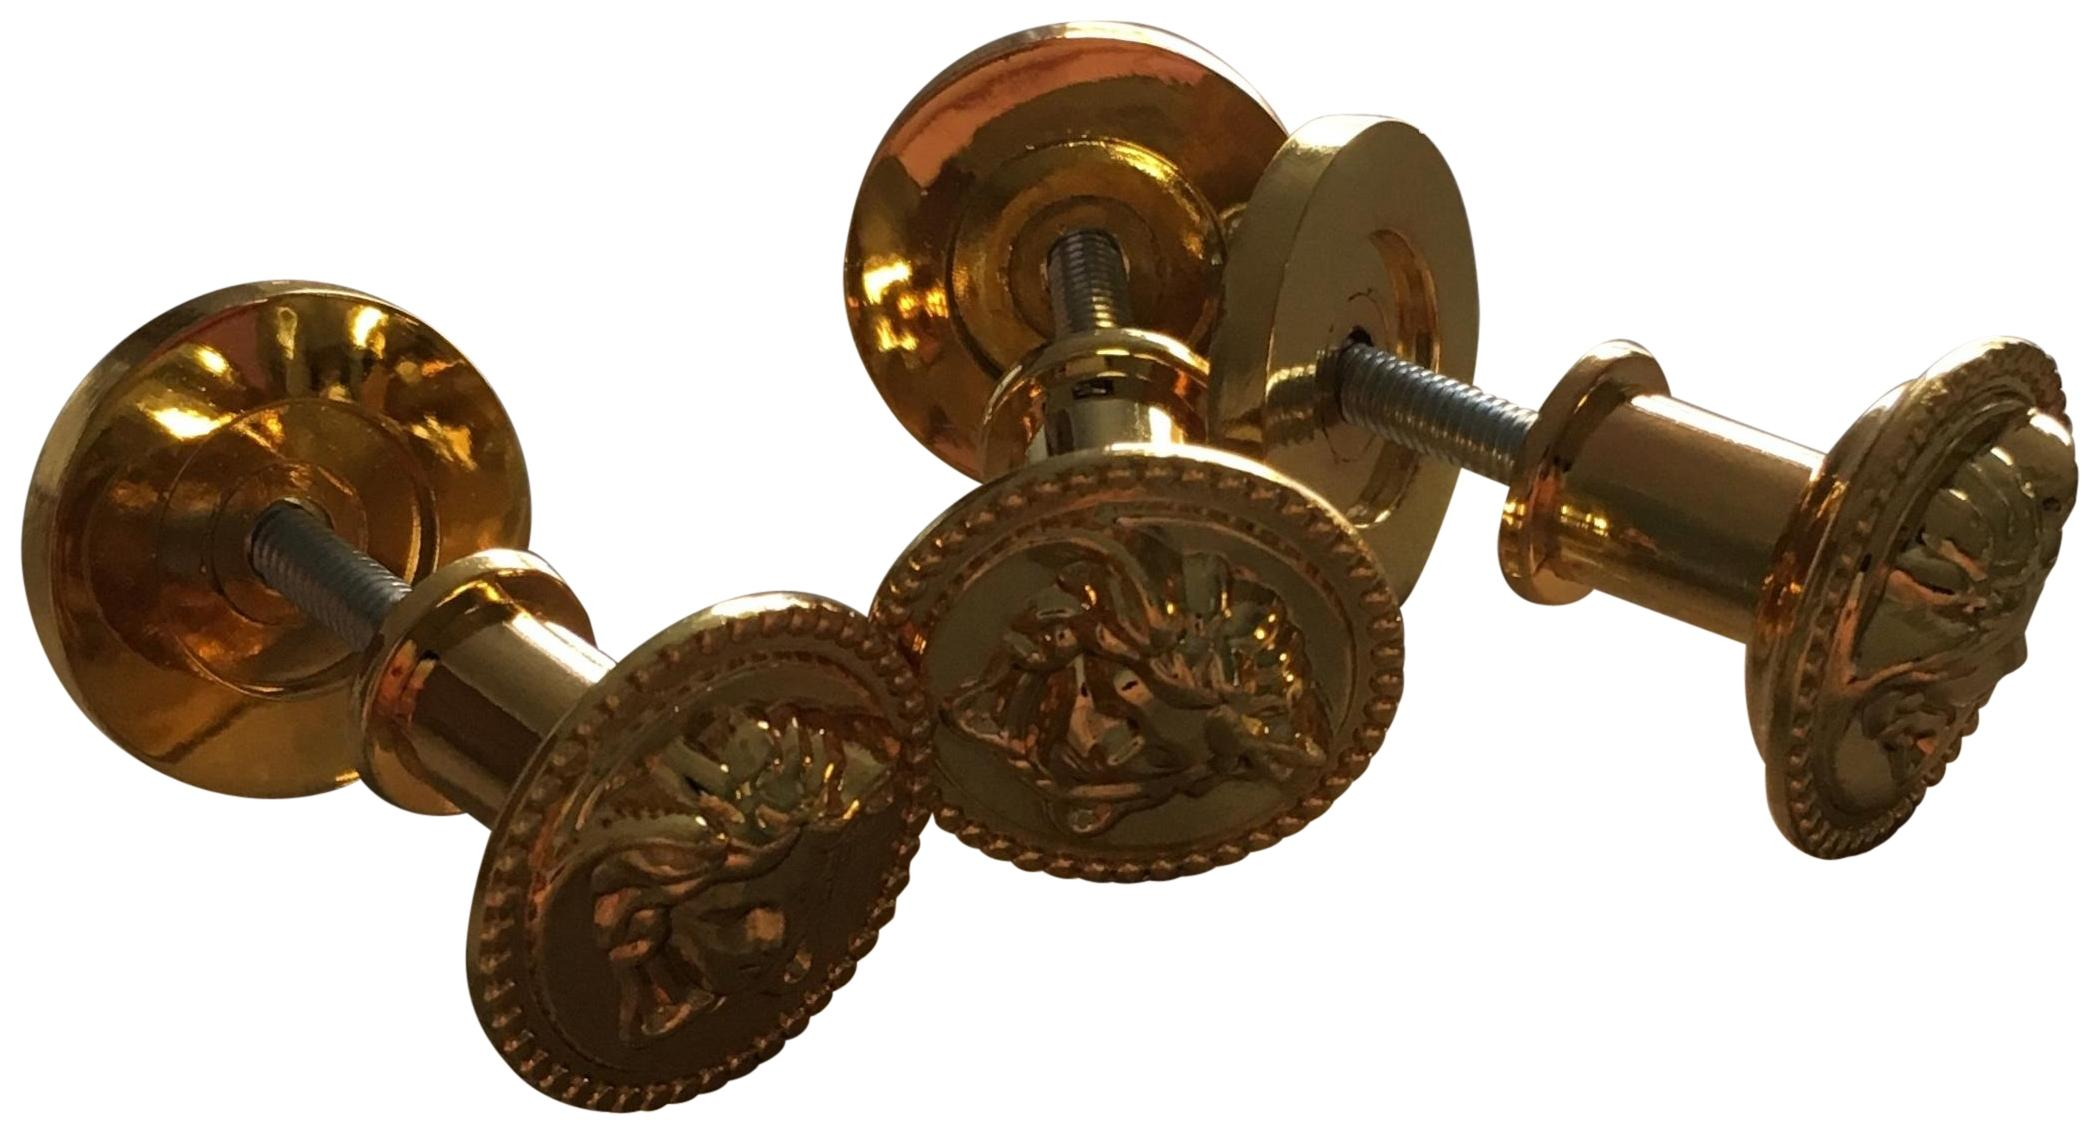 Versace VERSACE HOME CABINET KNOBS $300 RETAIL ...